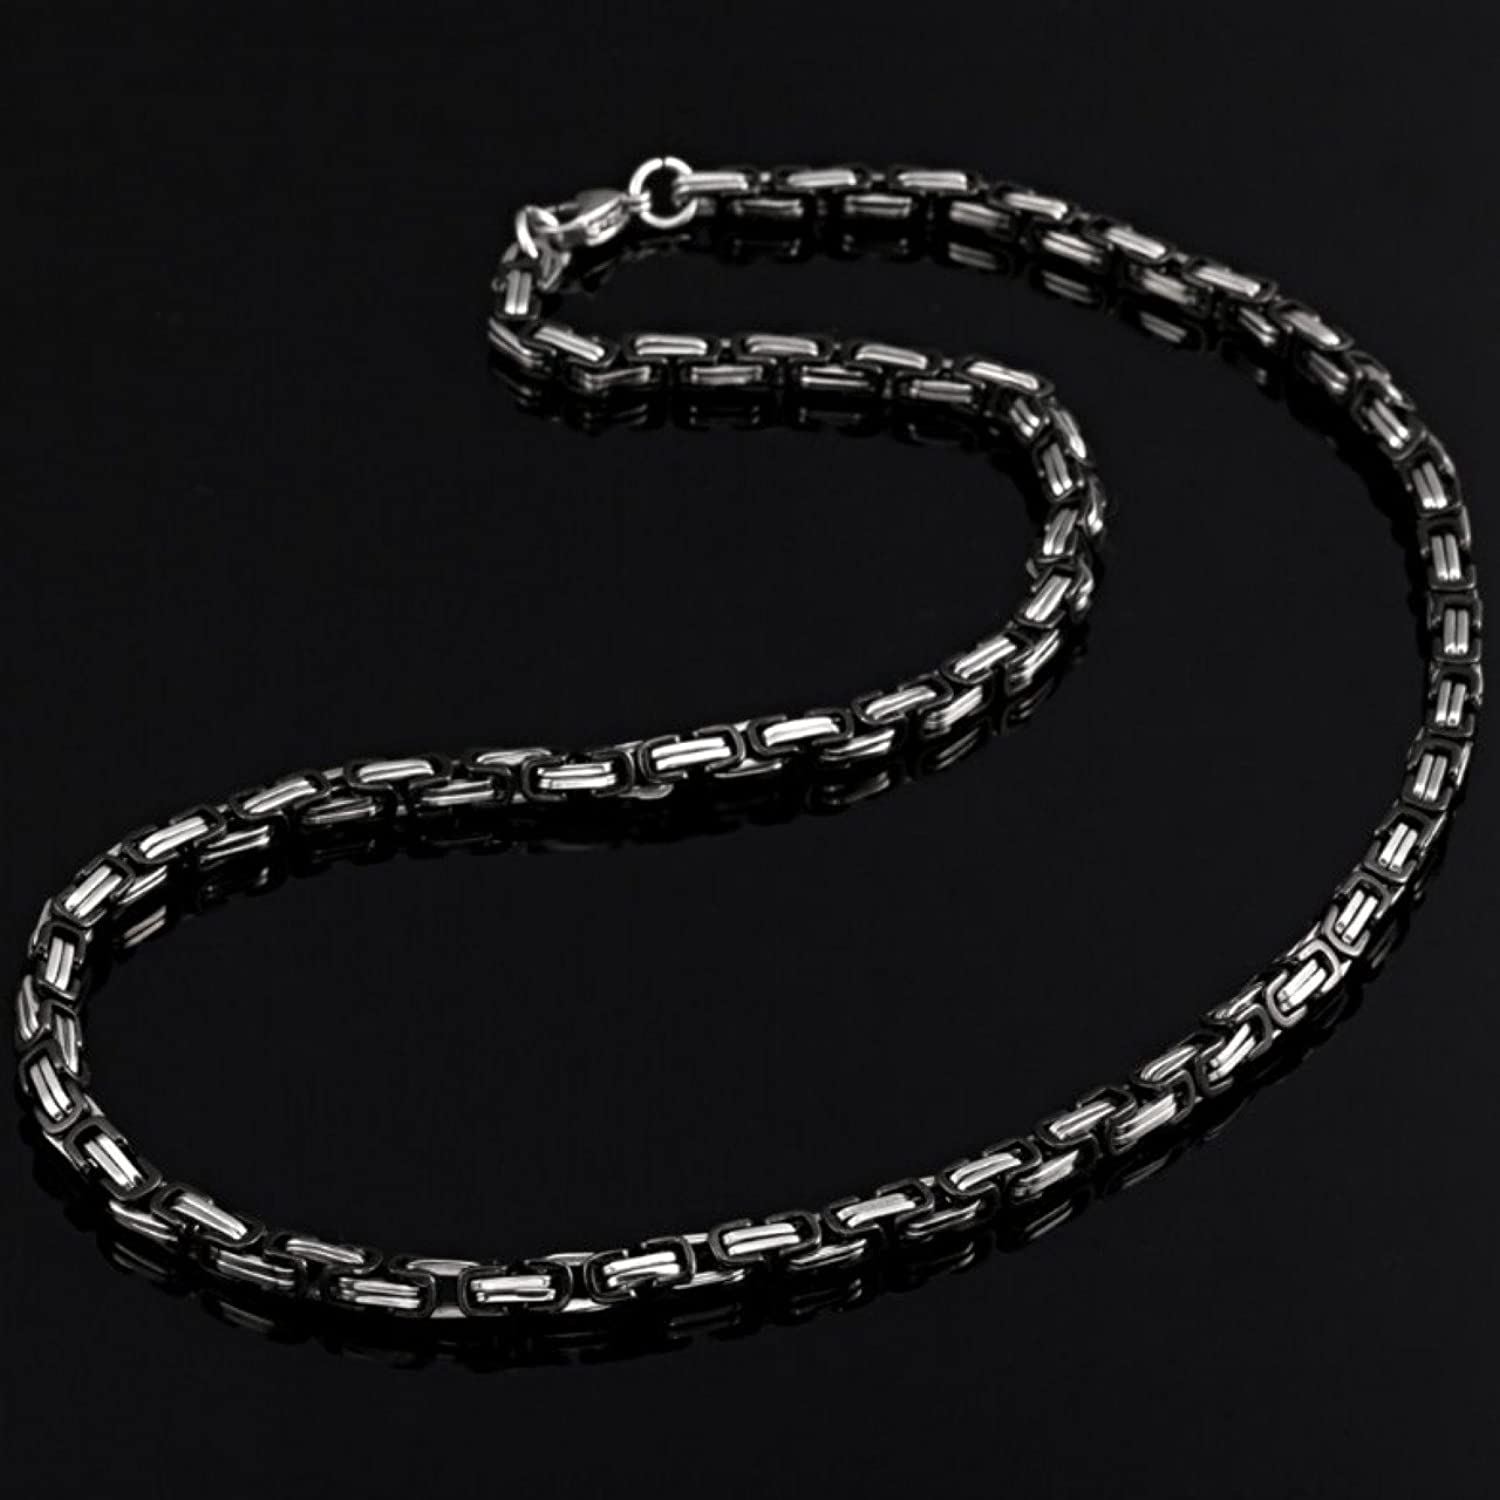 jewelry jewellery pinterest pin necklaces on for men classic mens lengths zxp by our chain chains selection necklace